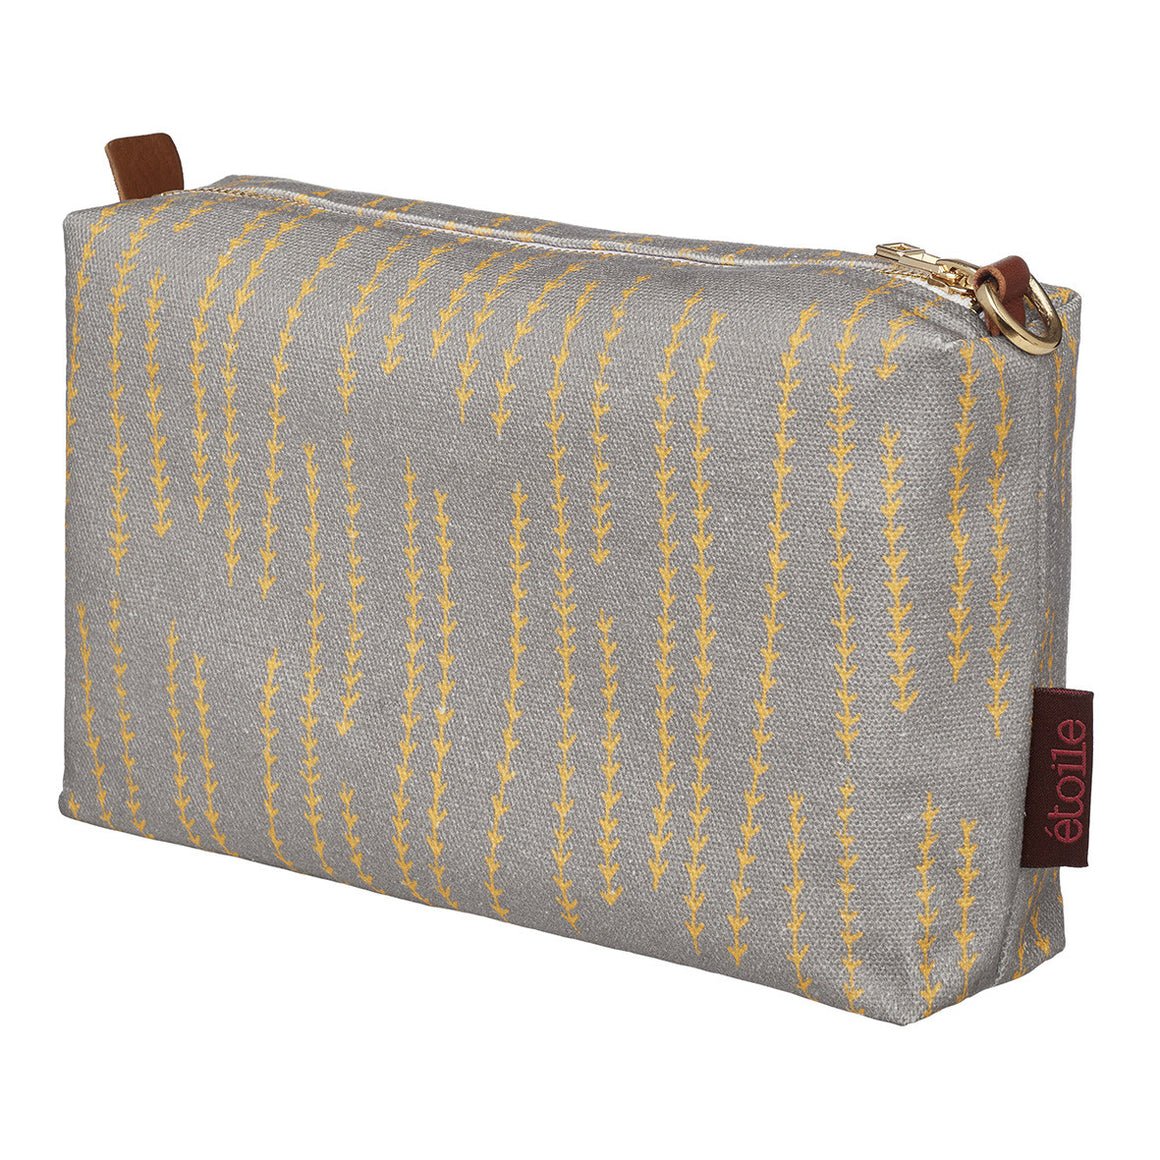 Graphic Rosemary Sprig Pattern Printed Cotton Canvas Toiletry Travel or Wash Bag in Dove Grey and Saffron yellow Ships from Canada (USA) prefect for all your beauty and cosmetic needs while travelling